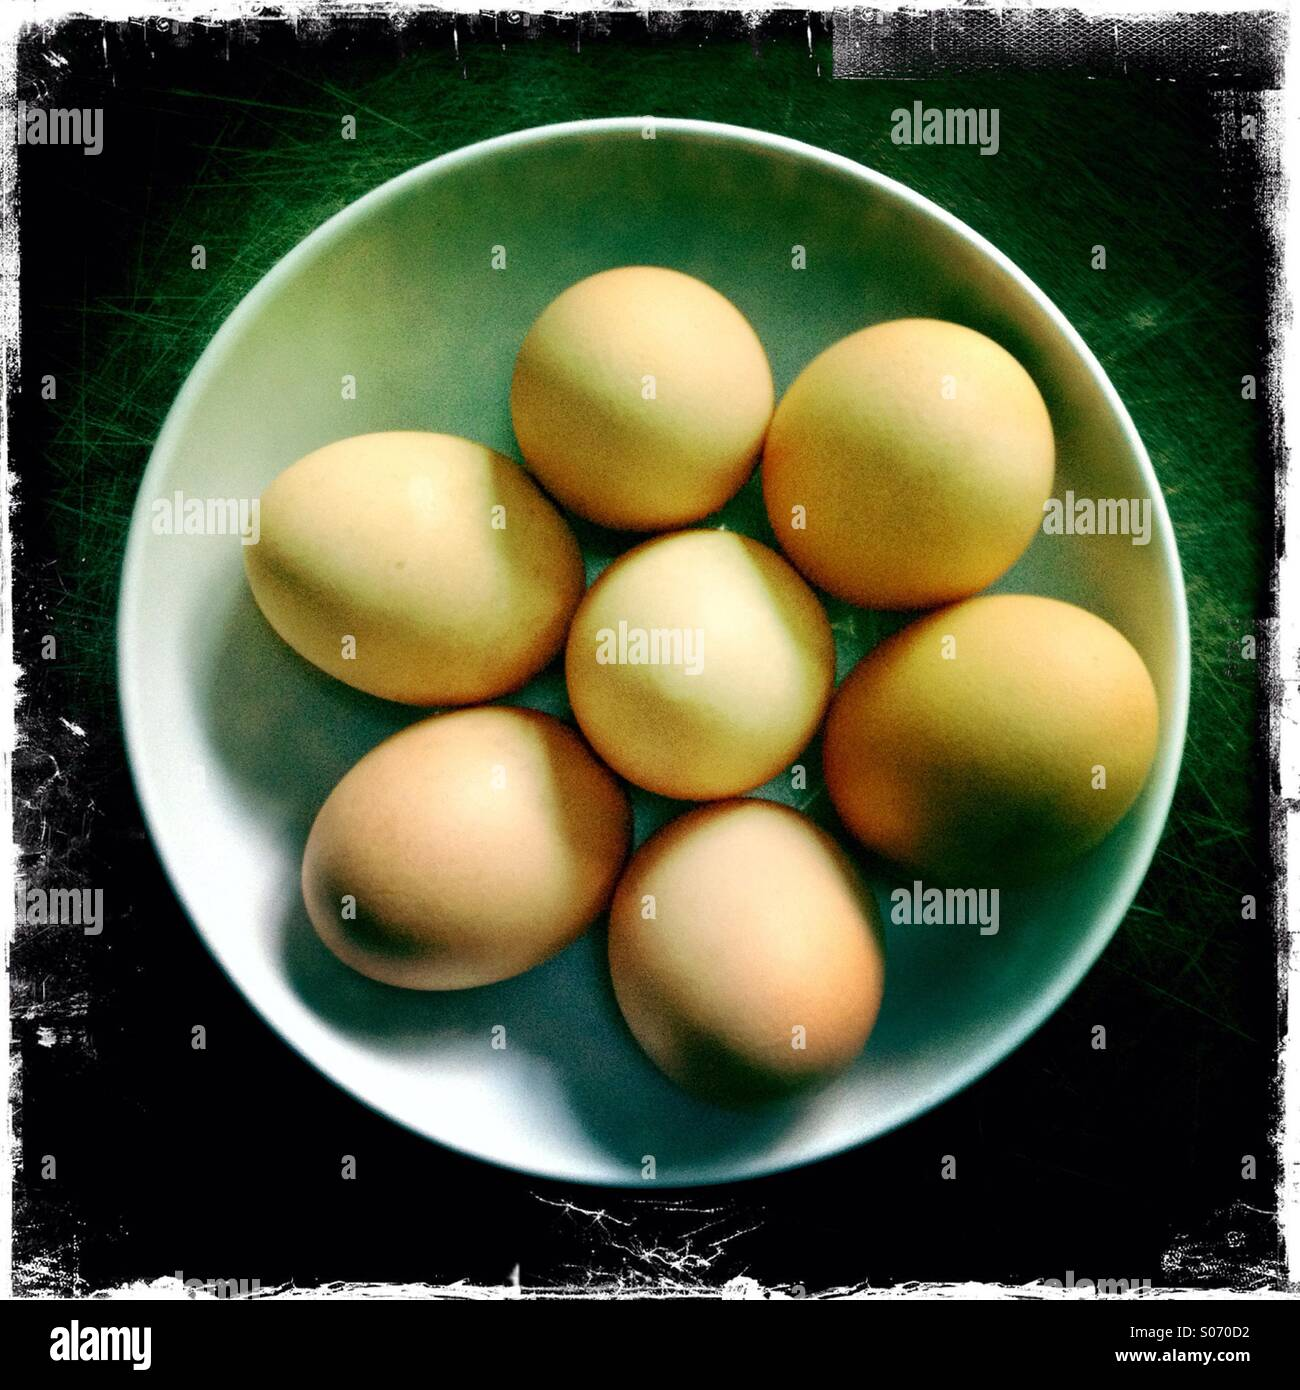 Bowl of hens eggs - Stock Image